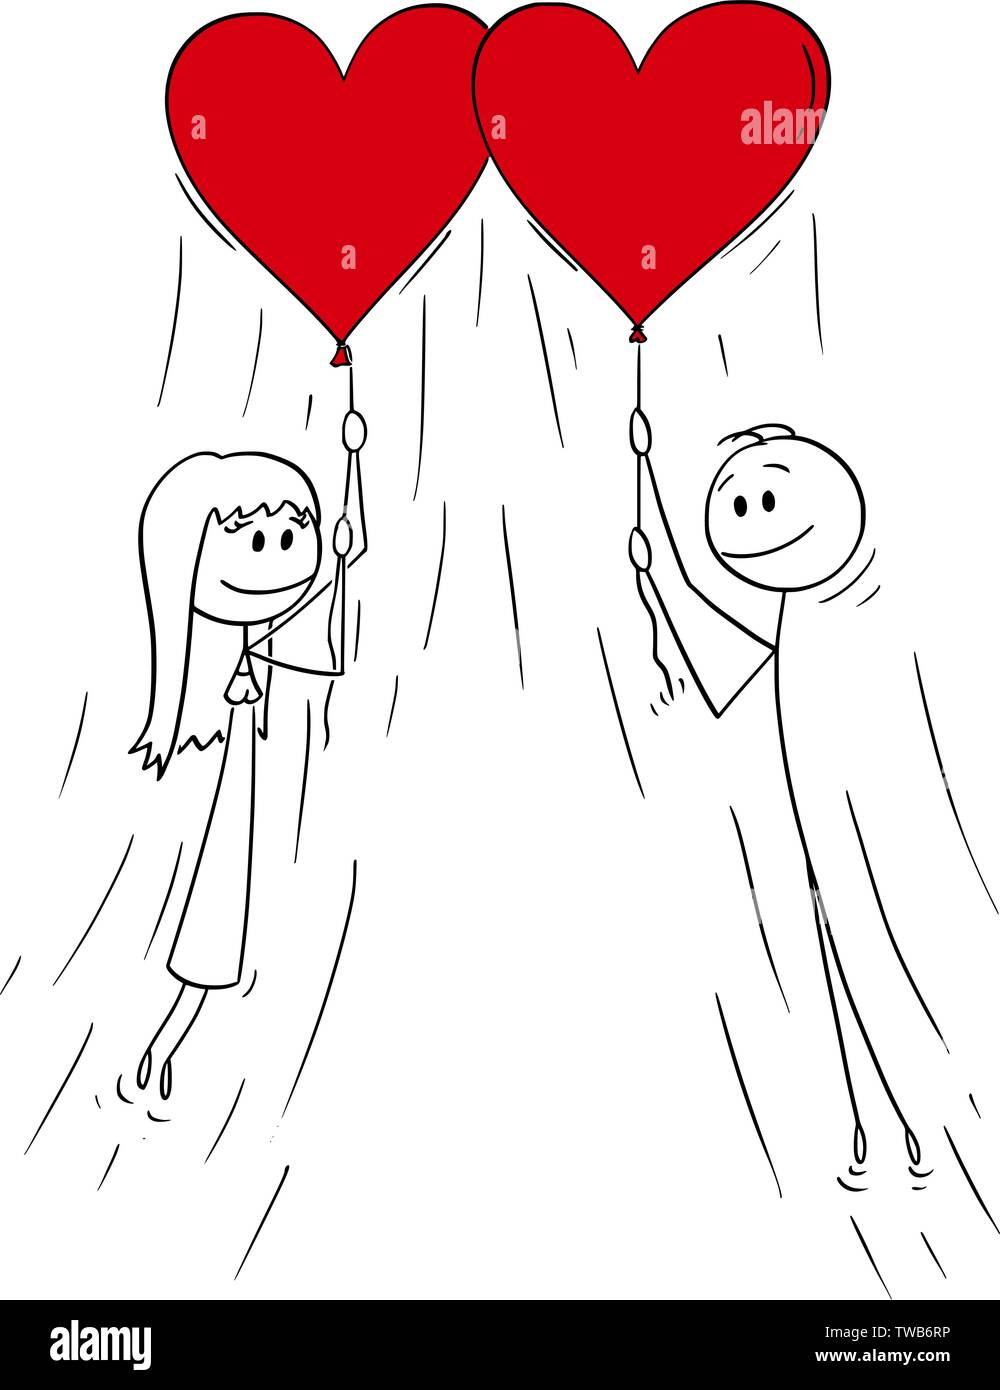 Vector cartoon stick figure drawing conceptual illustration of heterosexual couple of man and woman on date flying on red heart shaped balloons and smiling. - Stock Image